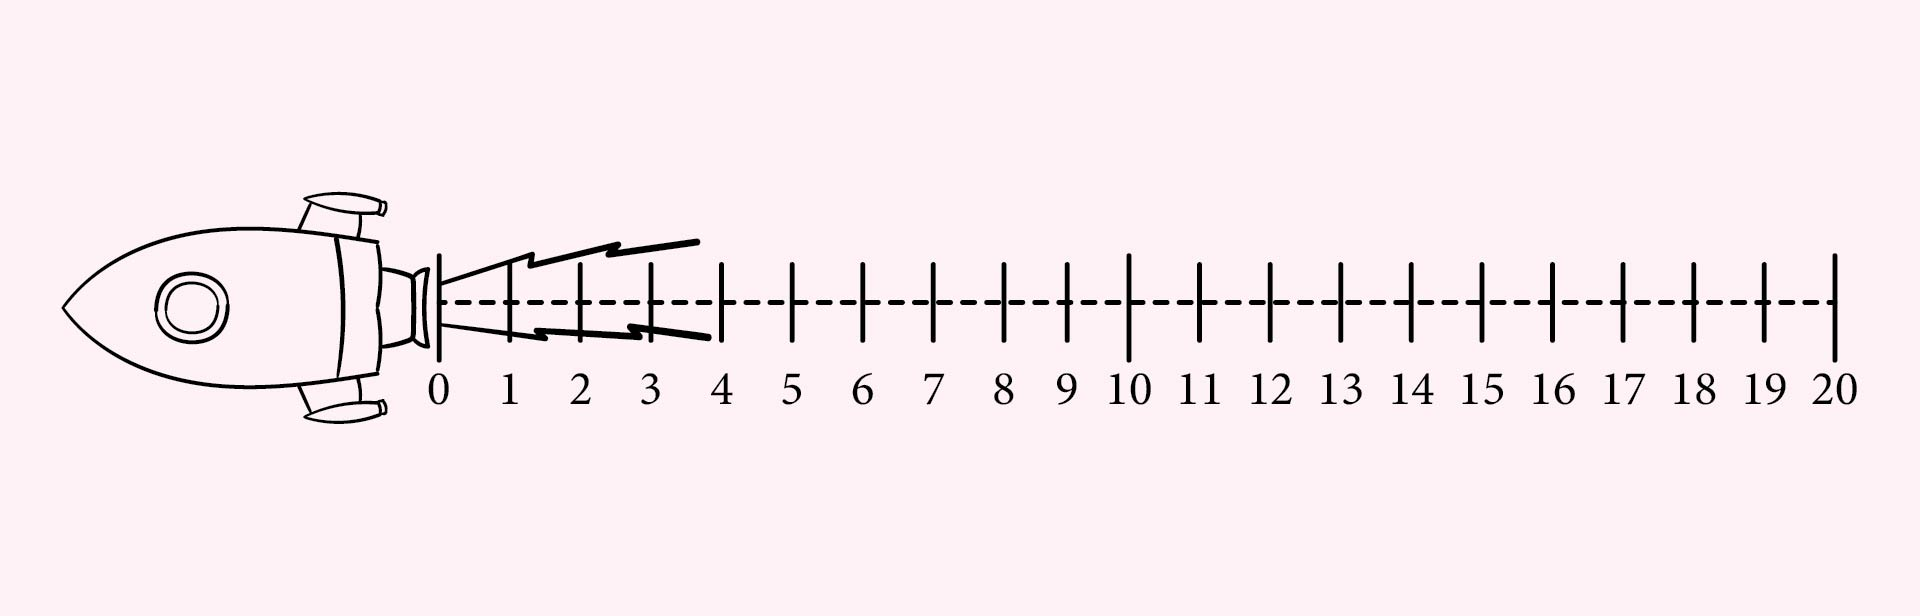 9 Images of Free Printable Number Line 1-20